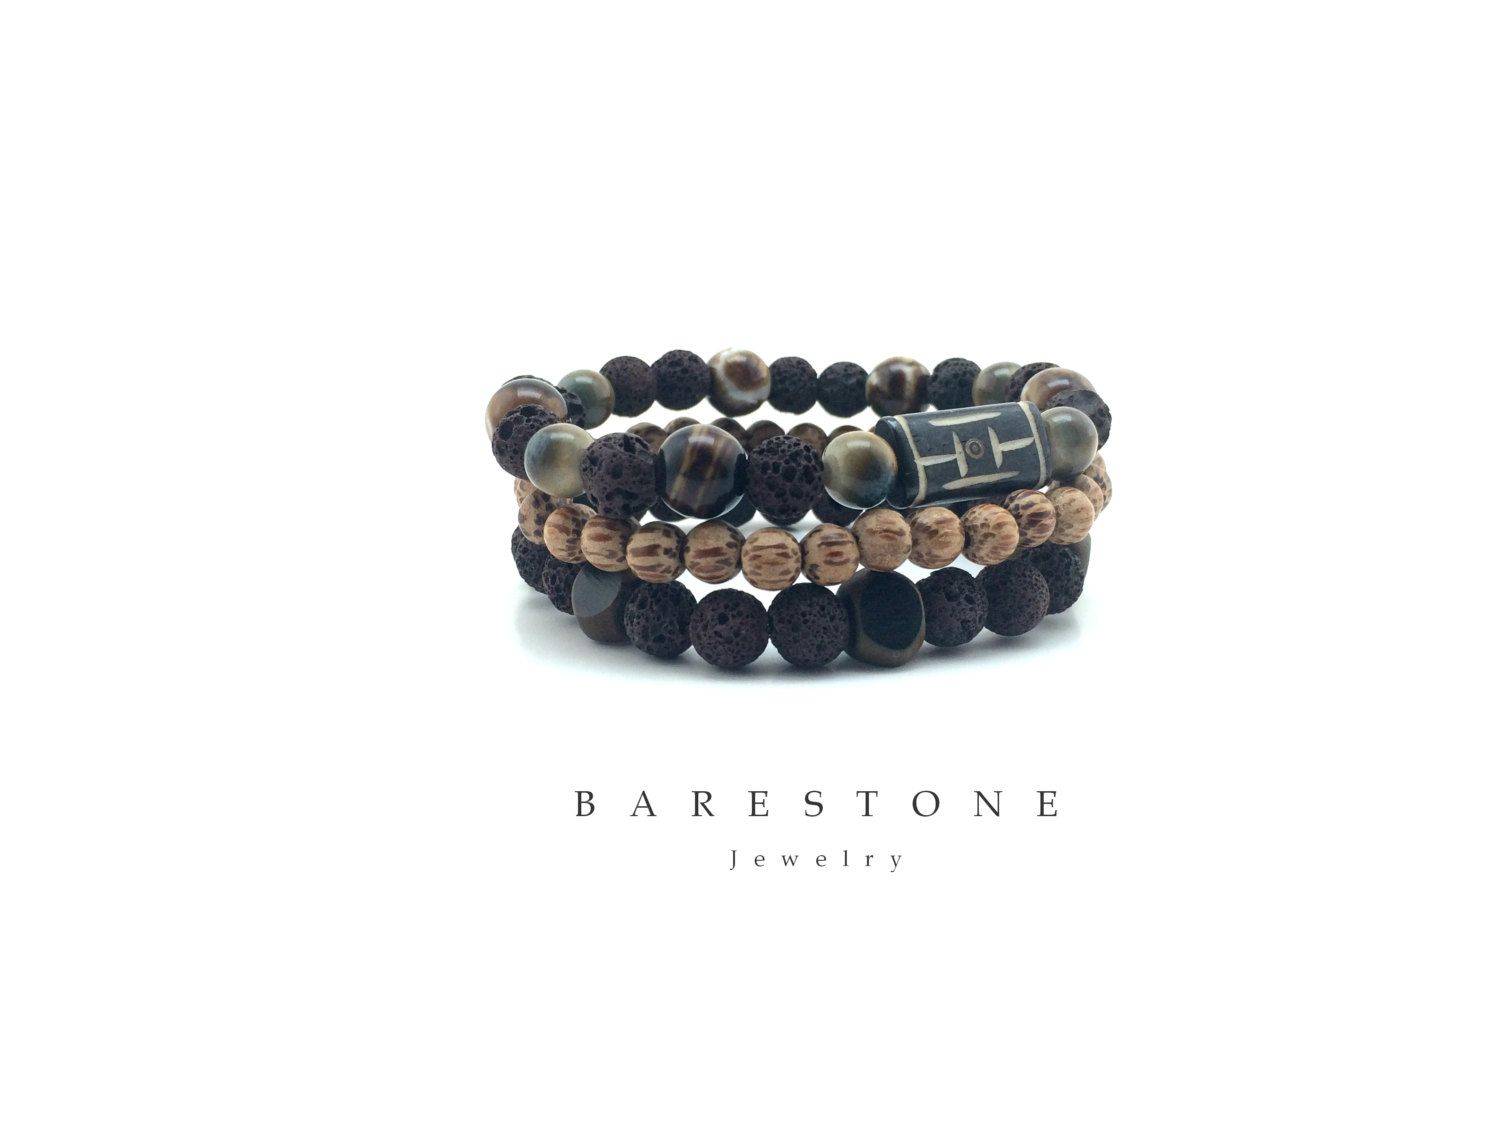 Stacking Bracelet Set Gemstone Tiger Eye Stretch Bracelets Men's Bracelet Set Ceramic Beads Agate Fall Jewelry Carved Bone Balance Symbol by BARESTONE on Etsy